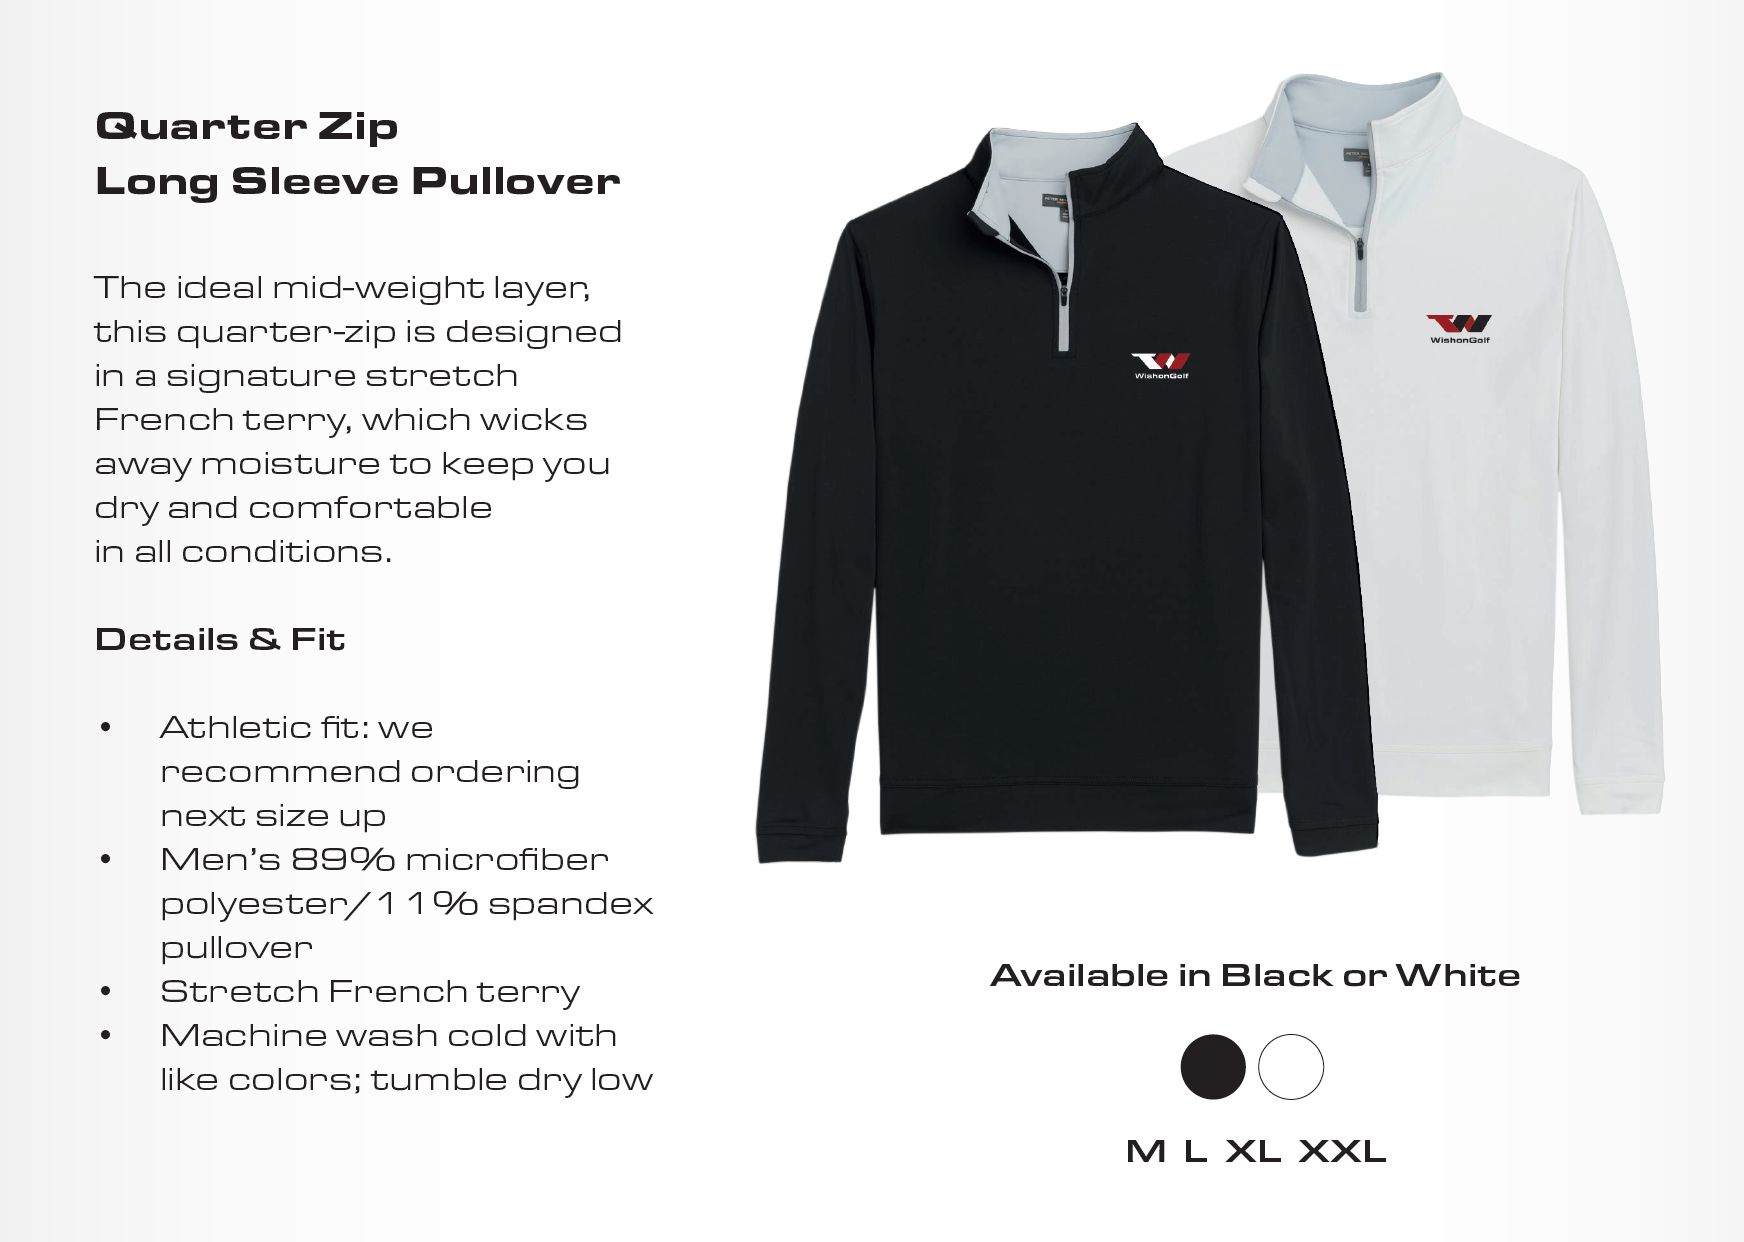 Quarter Zip Long Sleeve Pullover